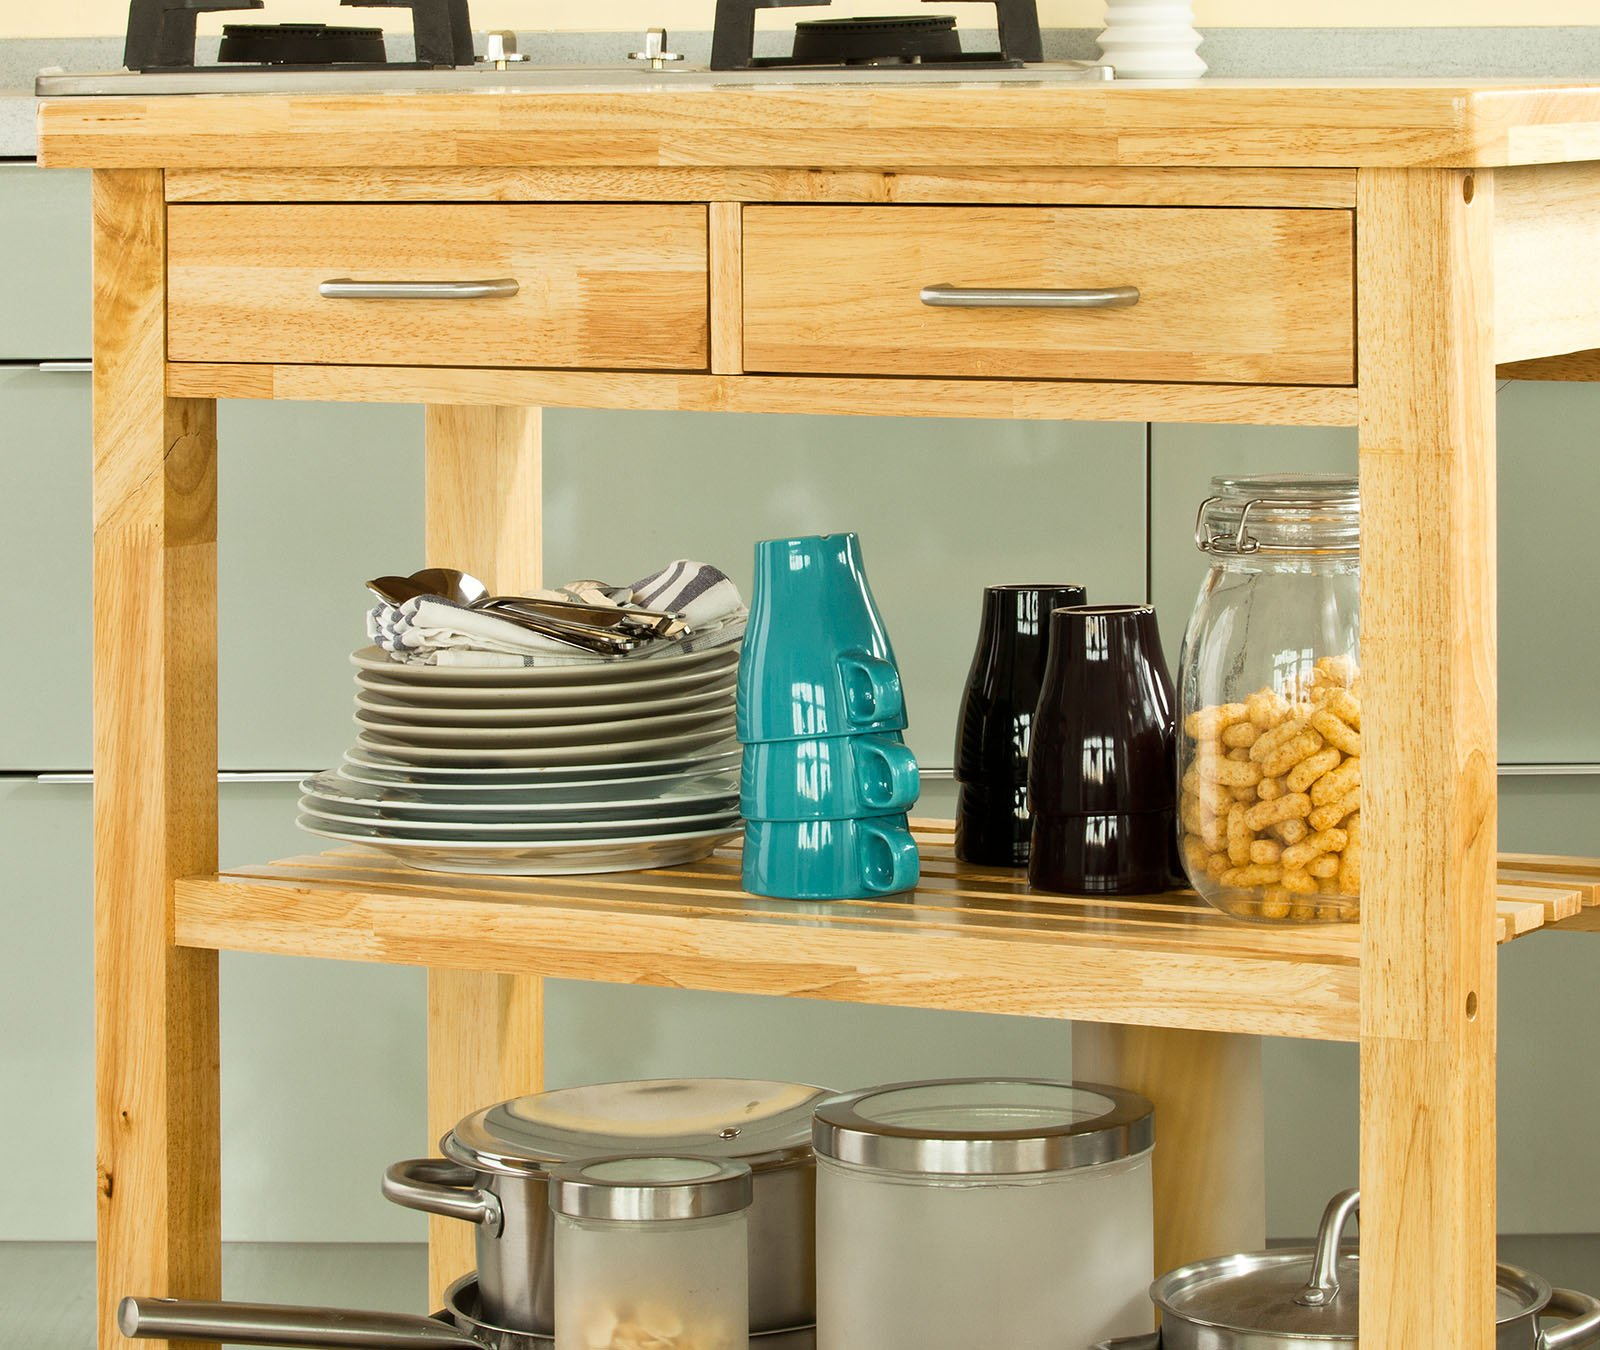 Haotian FKW24-N (natual), Rubber Wood Kitchen Trolley Cart with Two Drawers & Shelves, Kitchen Storage Trolley, L80cm(31.5in)xW40cm(15.7in)xH90cm(35.4in) by Haotian (Image #6)